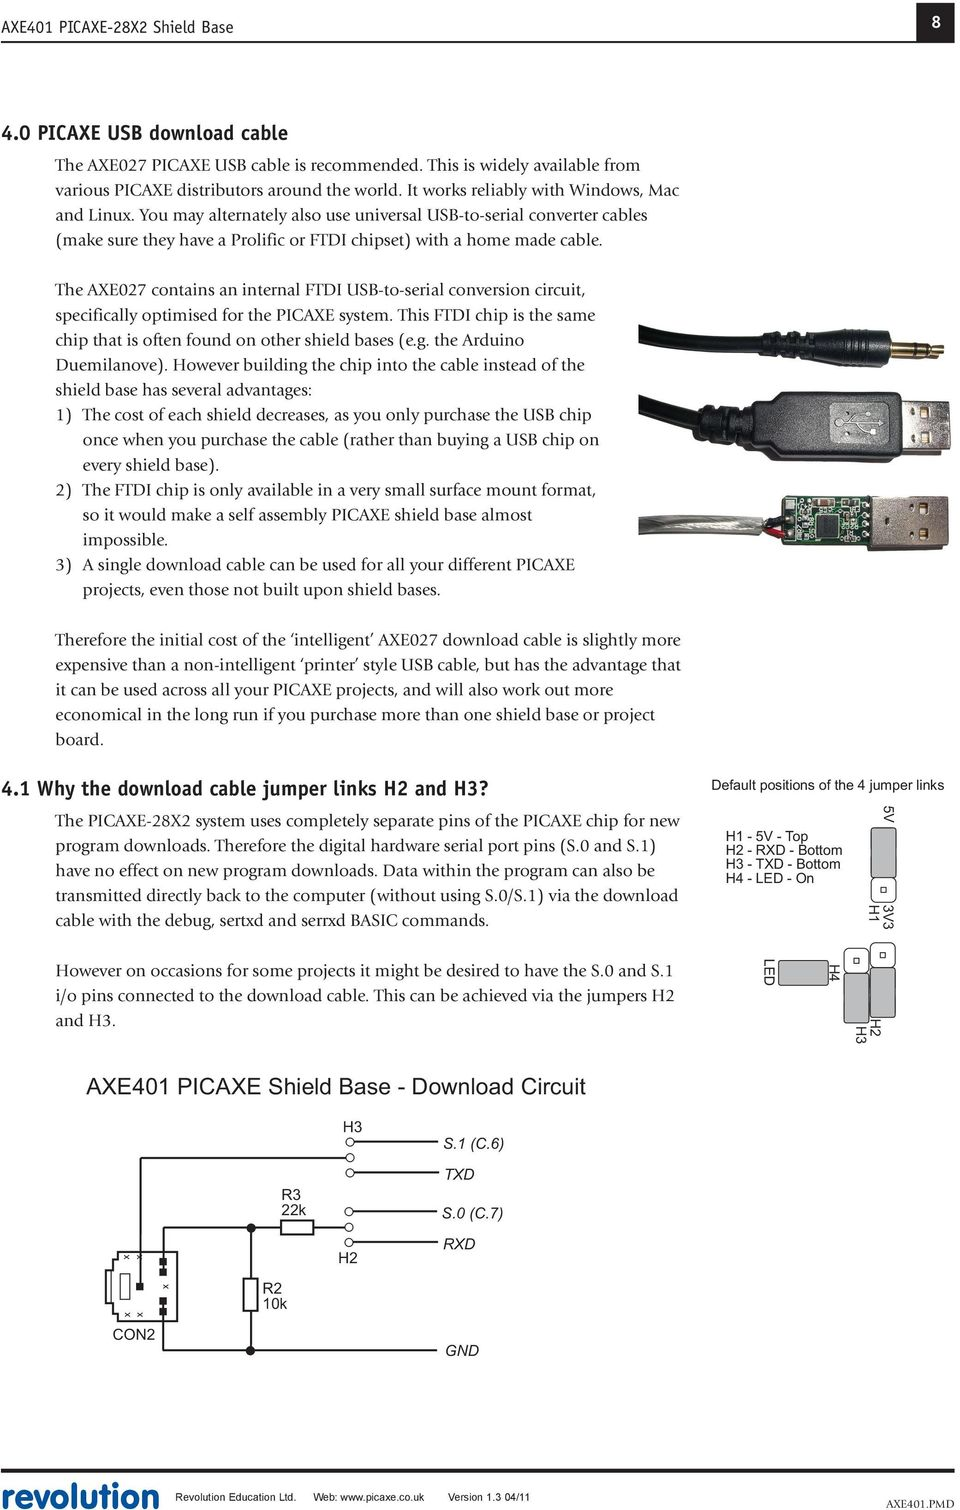 Picaxe 28x2 Shield Base Axe401 Pdf Programming Circuit A Higher Frequency Means Faster Operating Speed But The Power Use Of Microcontroller